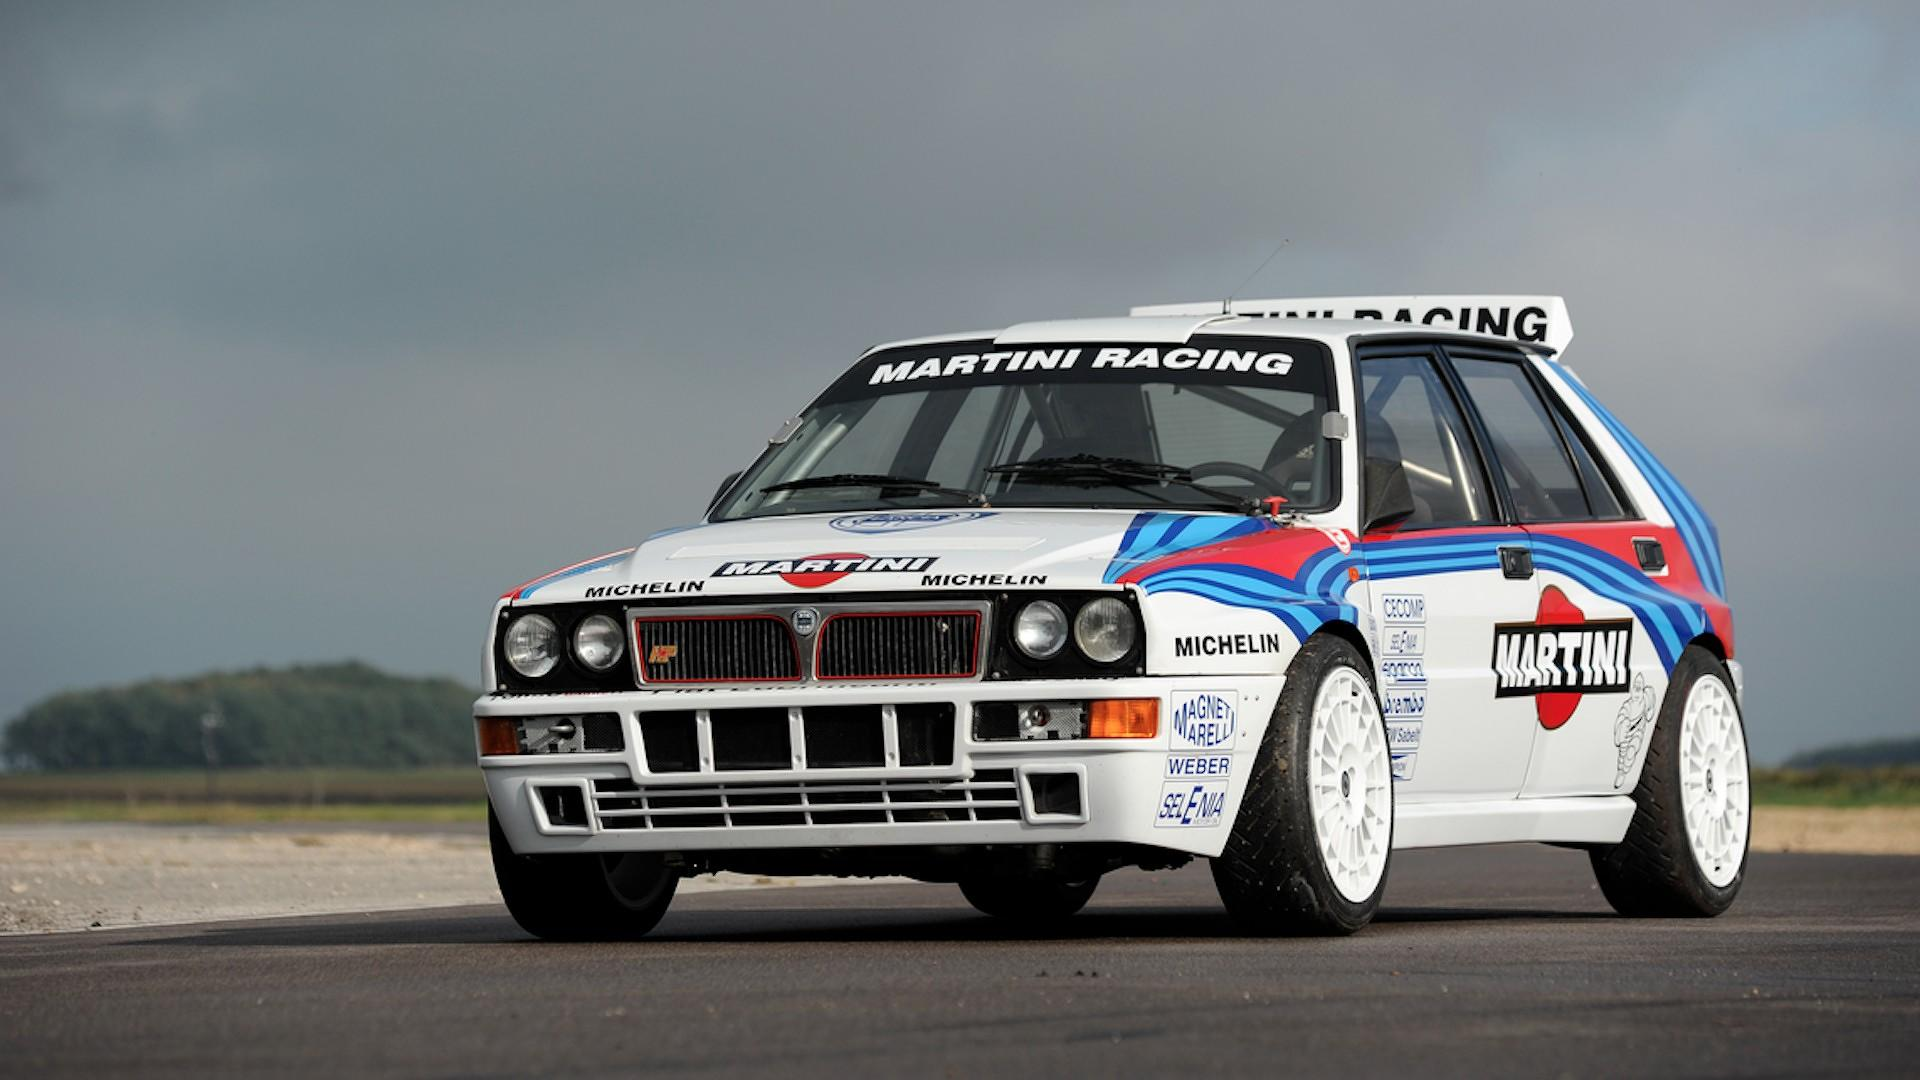 rally driven lancia delta causes bidding war sells for 297k. Black Bedroom Furniture Sets. Home Design Ideas